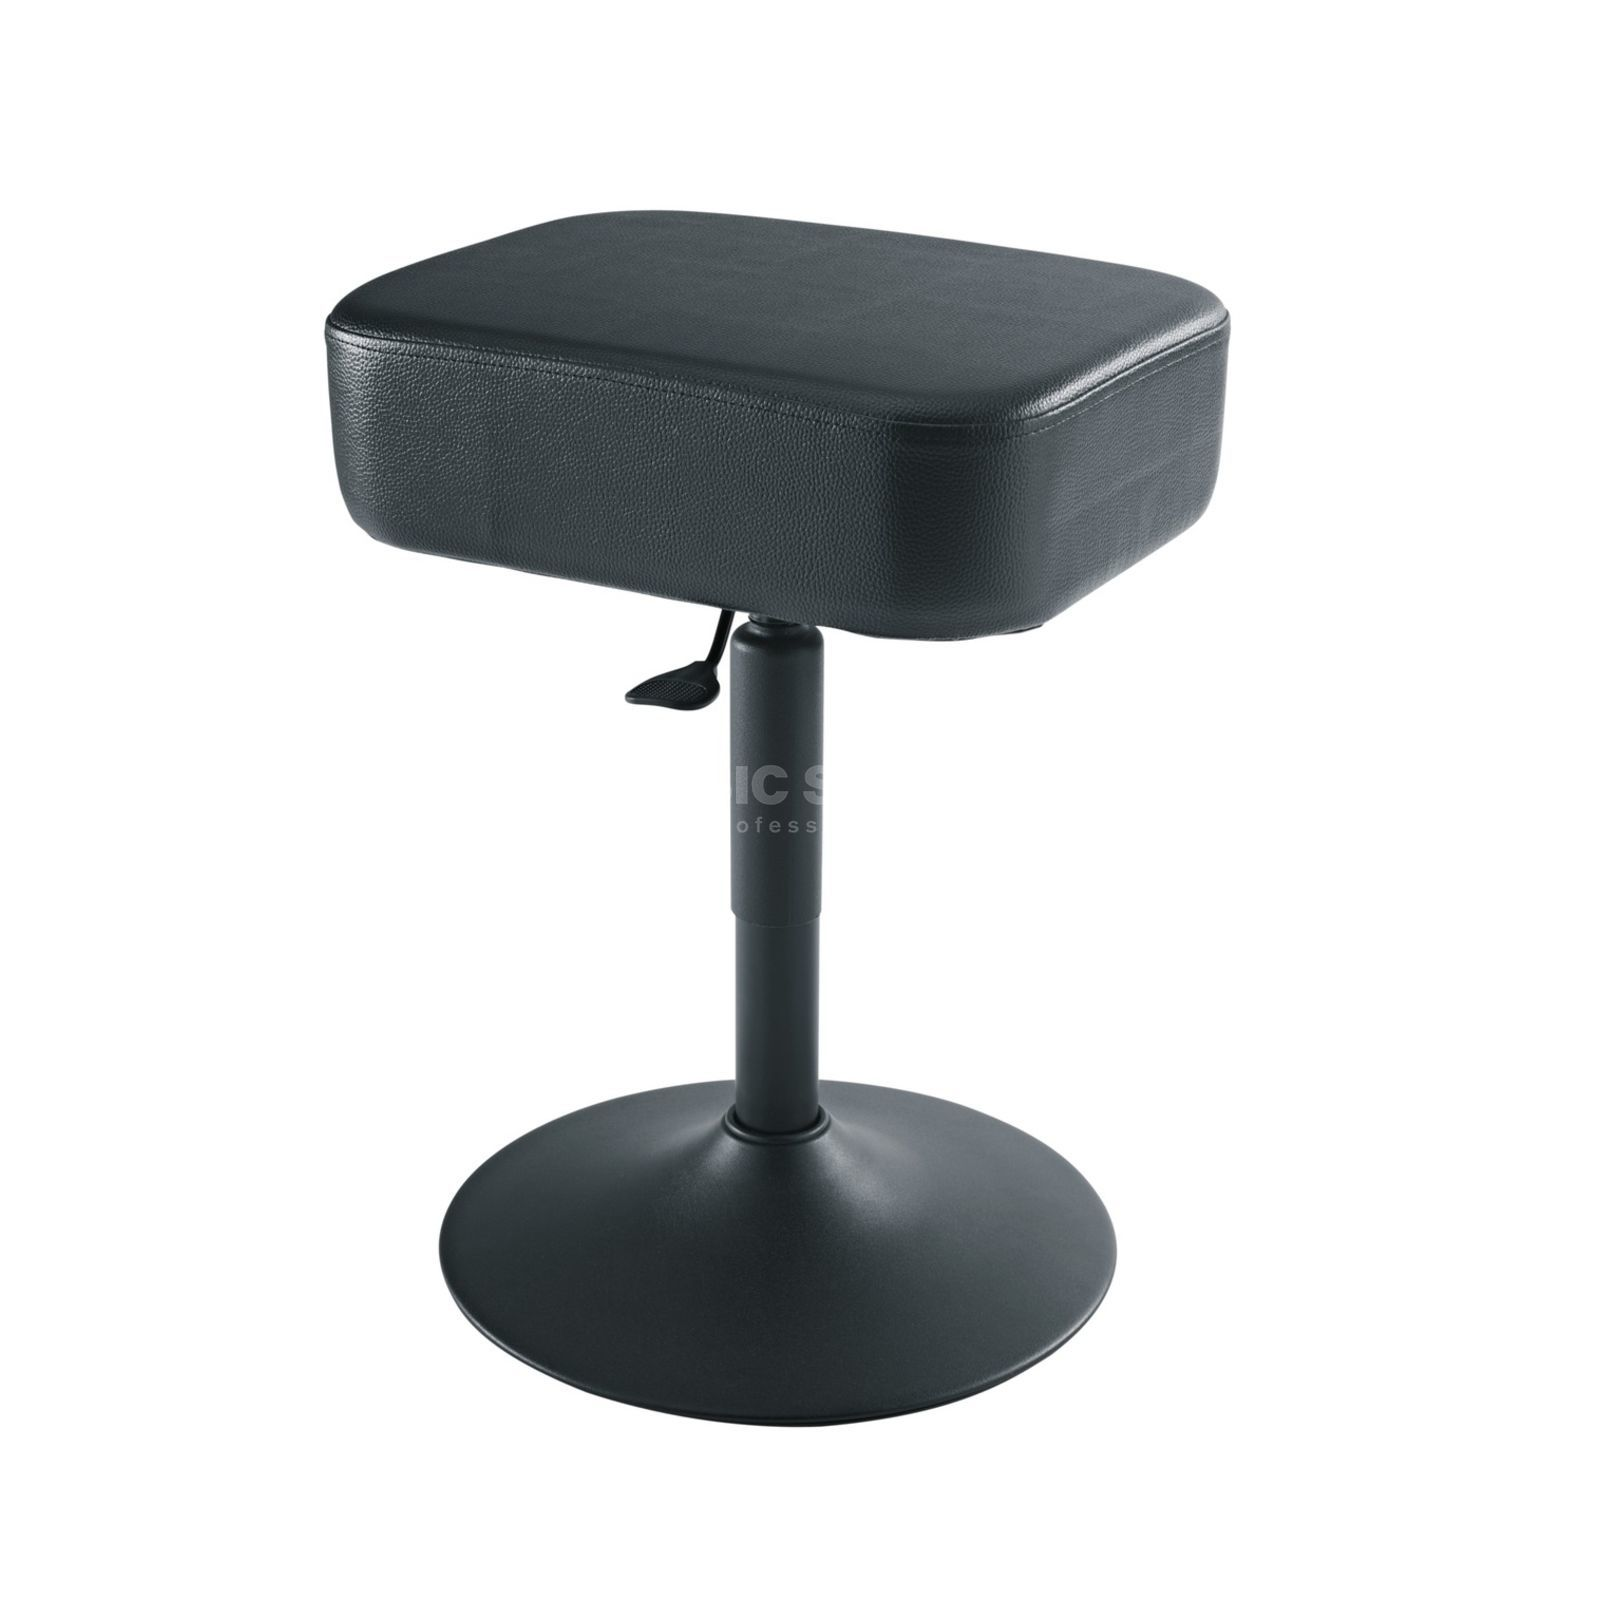 König & Meyer 14093 Piano Stool black Produktbillede